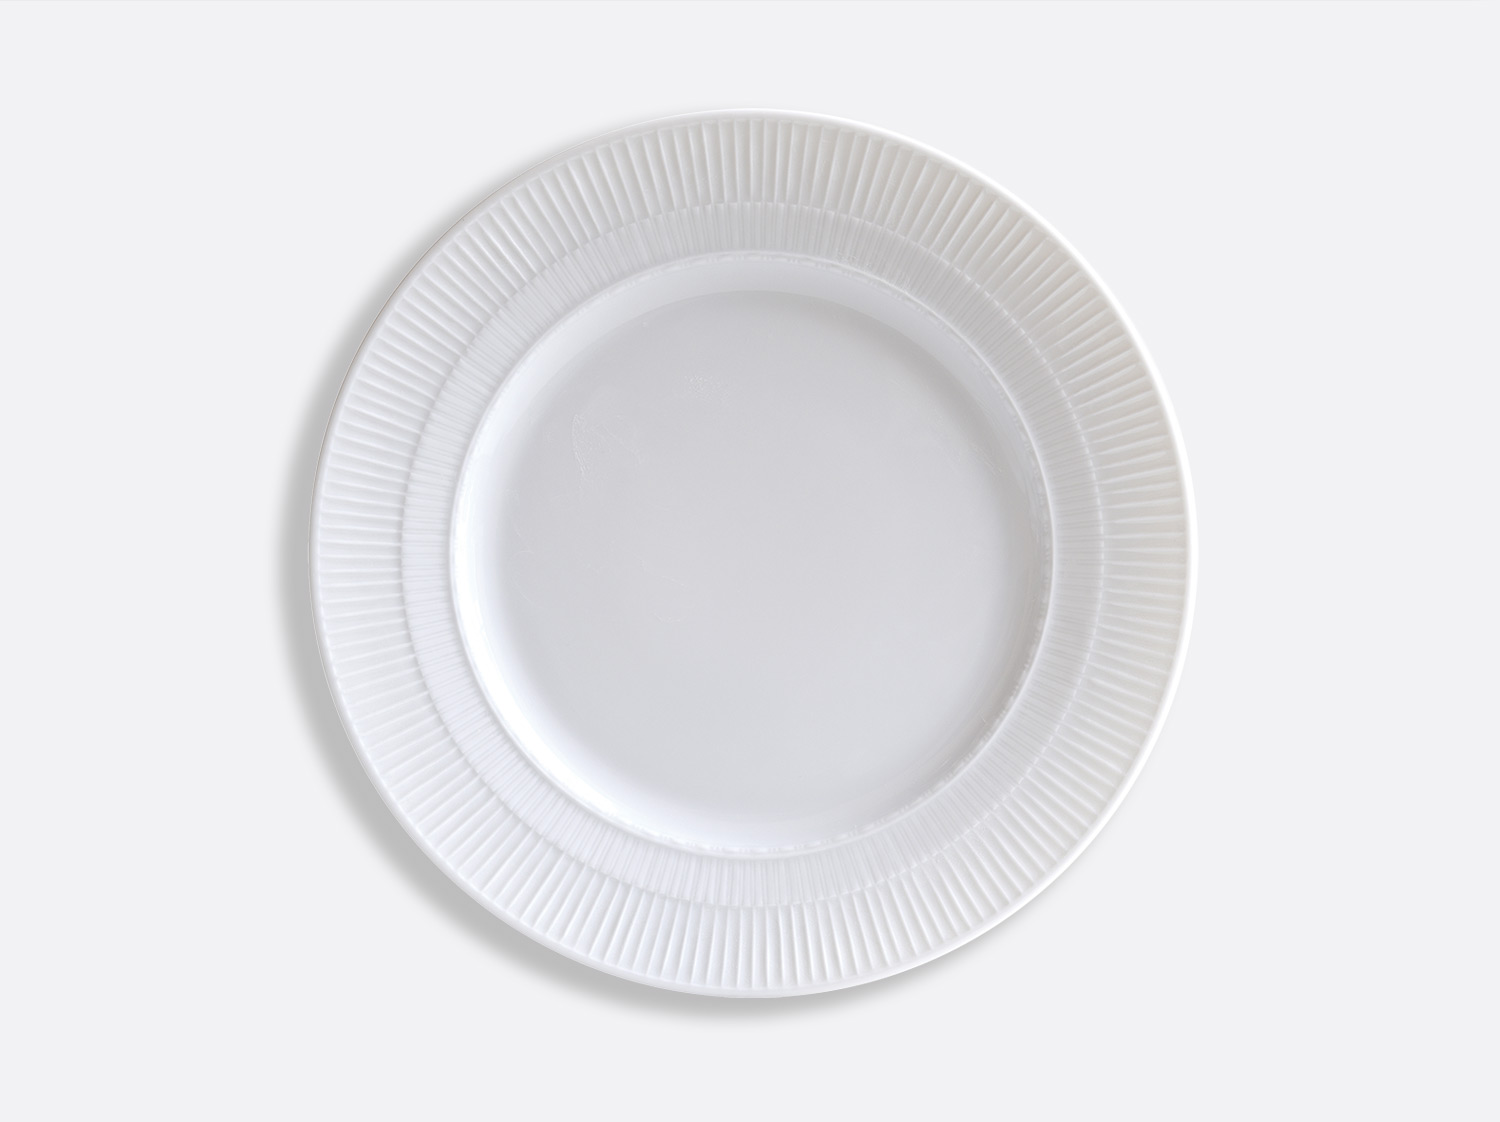 Assiette à dîner Marly 26 cm en porcelaine de la collection Louvre Bernardaud